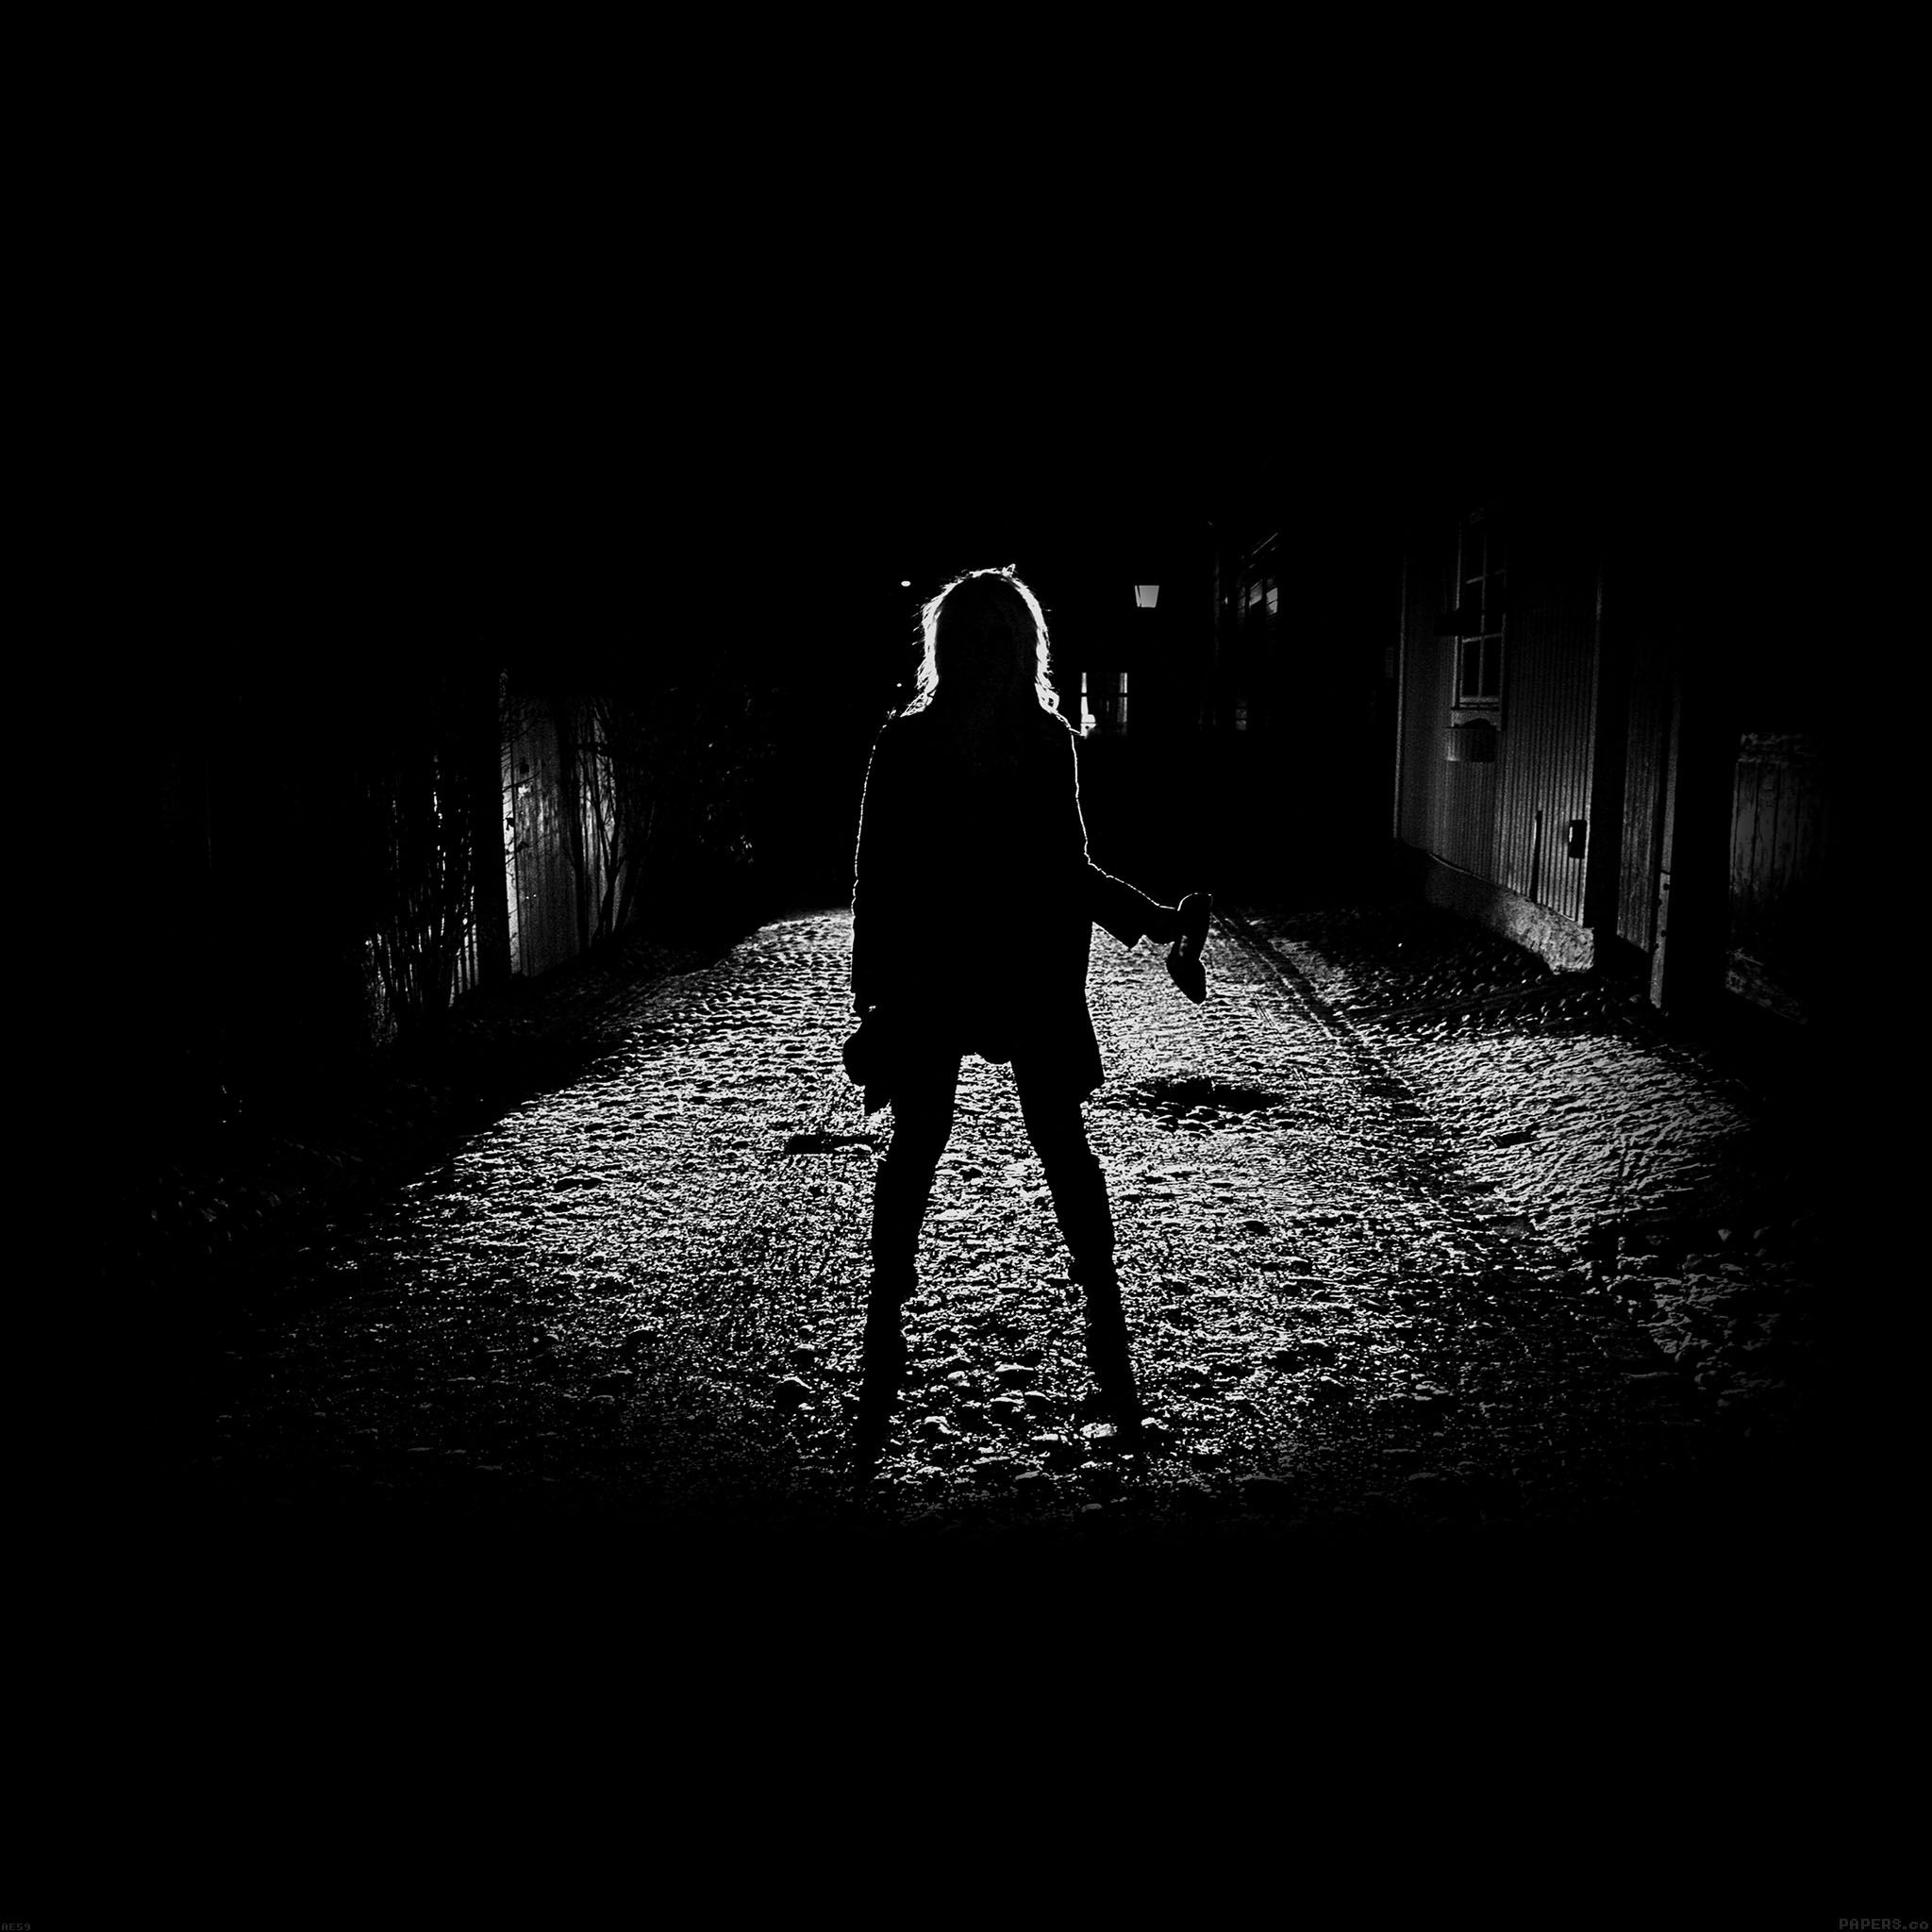 Anime Girl Wallpaper Black And White Ae59 Girl Silhouette Dark Street Scary Maybe Papers Co